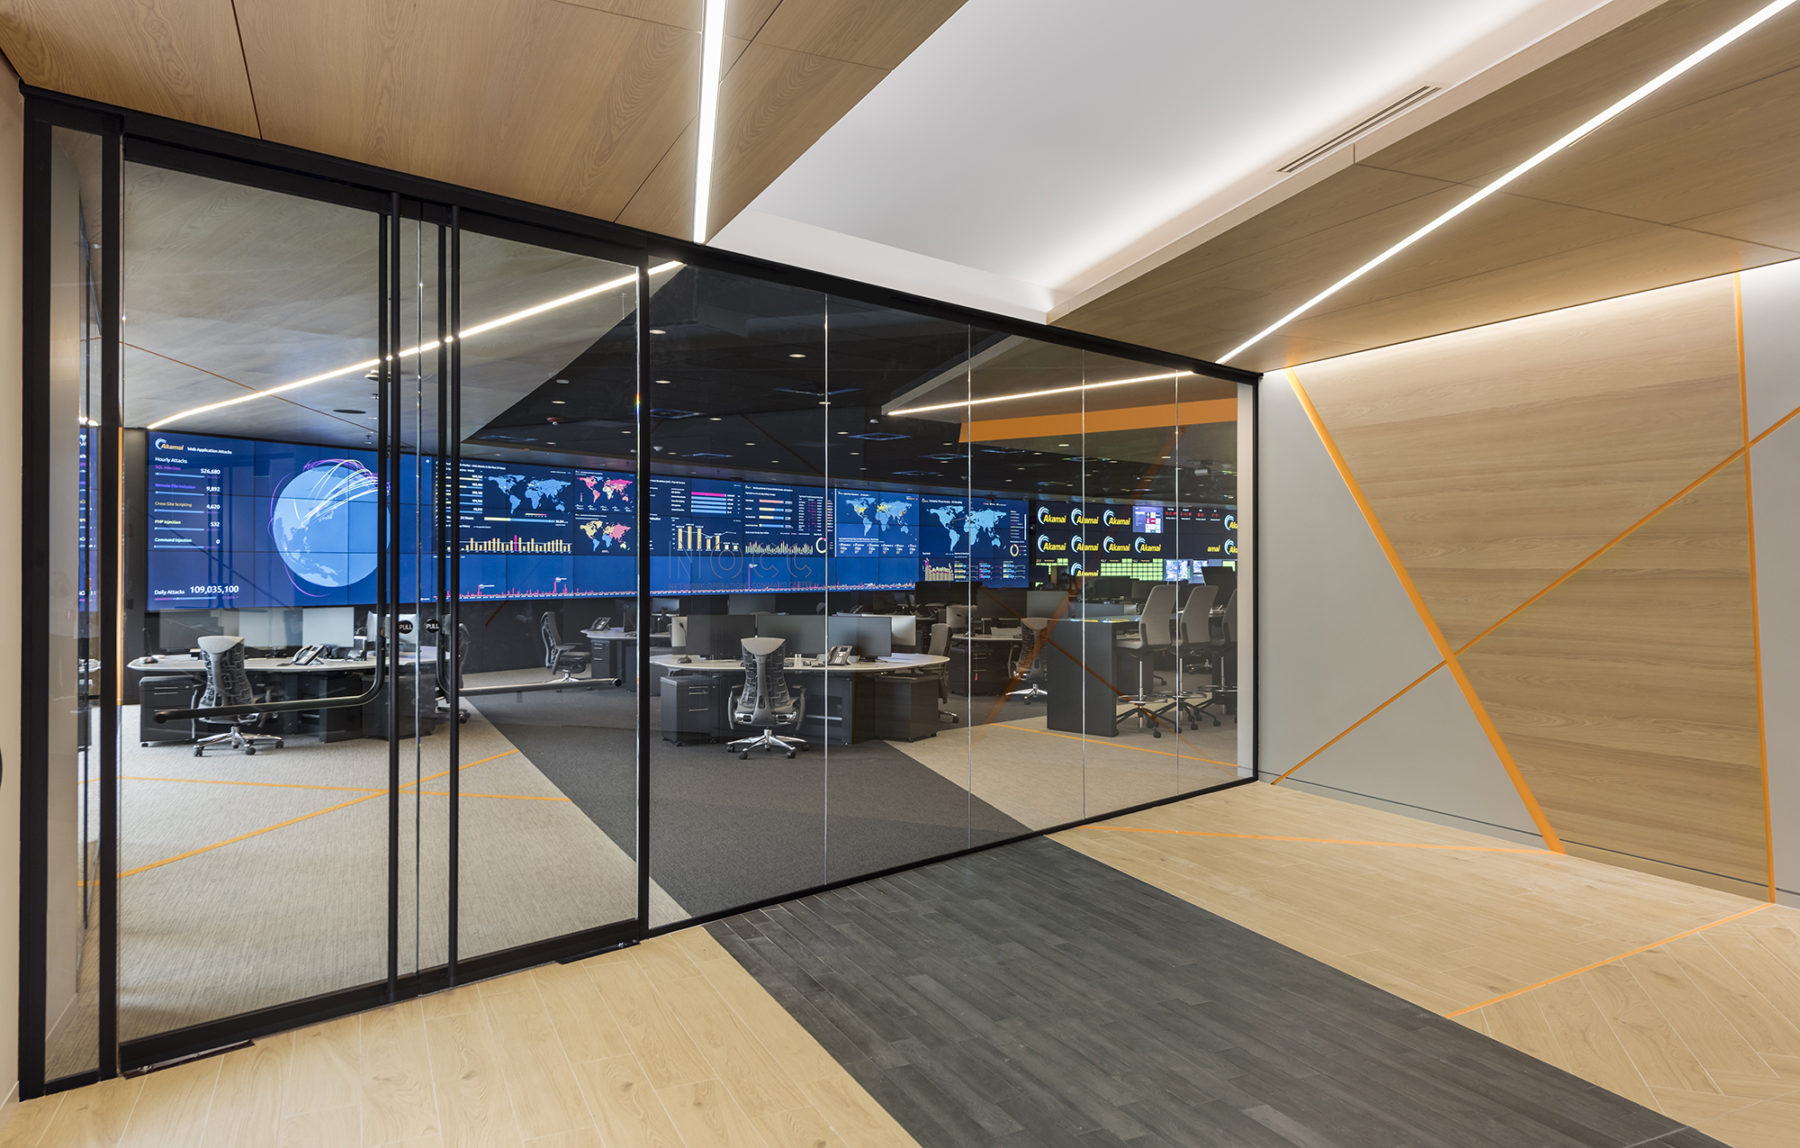 view through glass doors into technology space